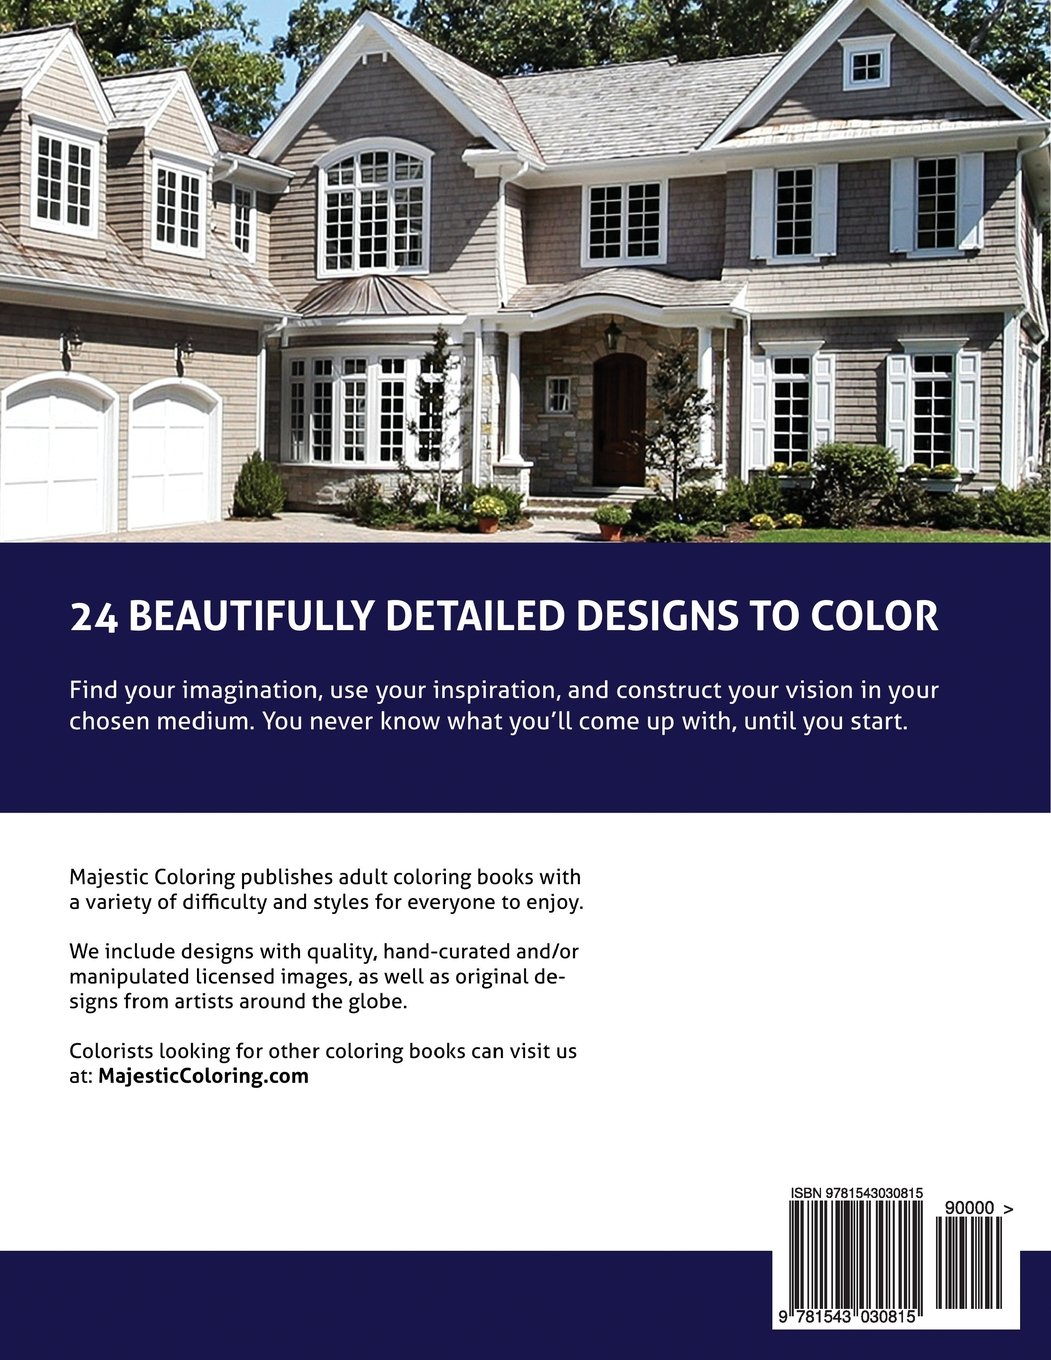 Coloring book real estate - Amazing Homes Grayscale Coloring Book For Adults Majestic Coloring 9781543030815 Amazon Com Books